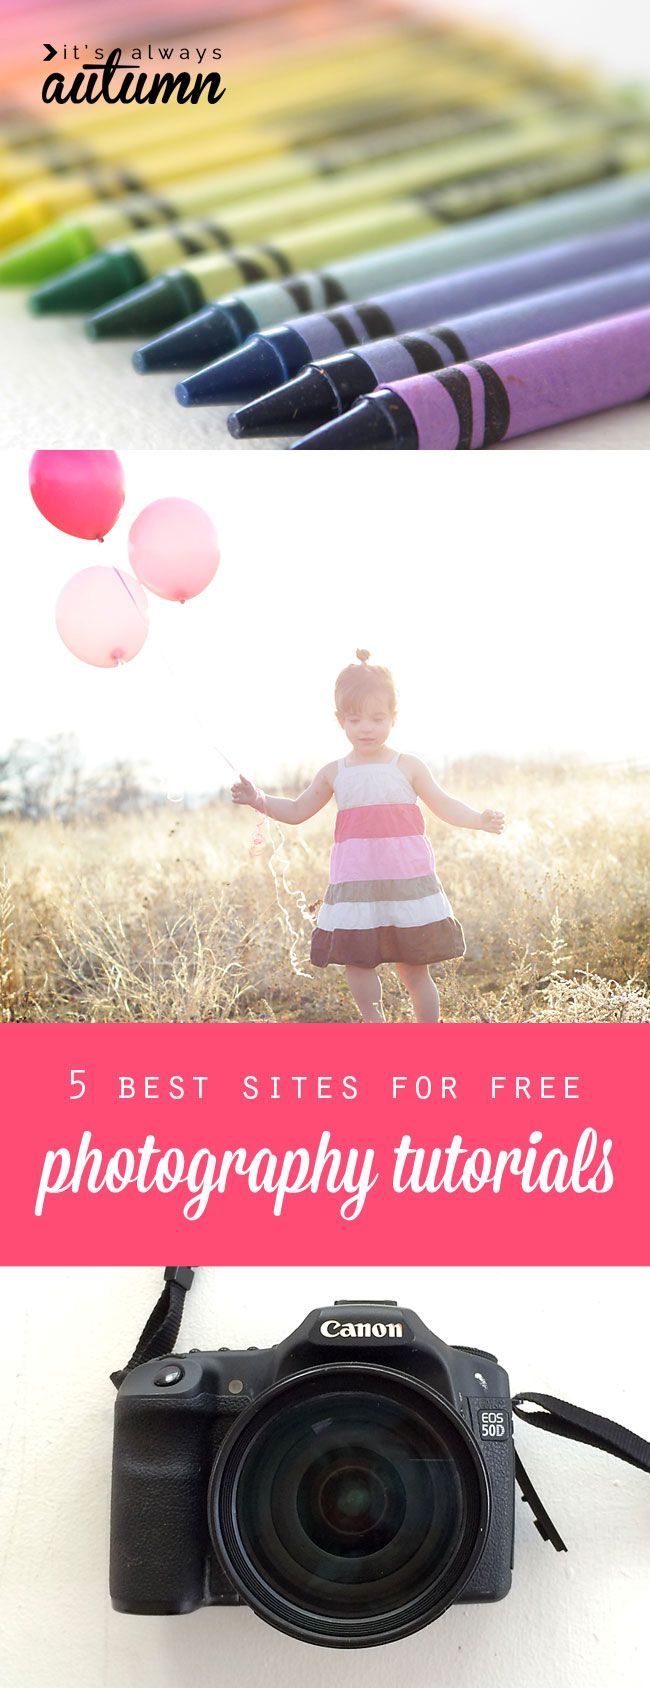 5 best sites for free online photography